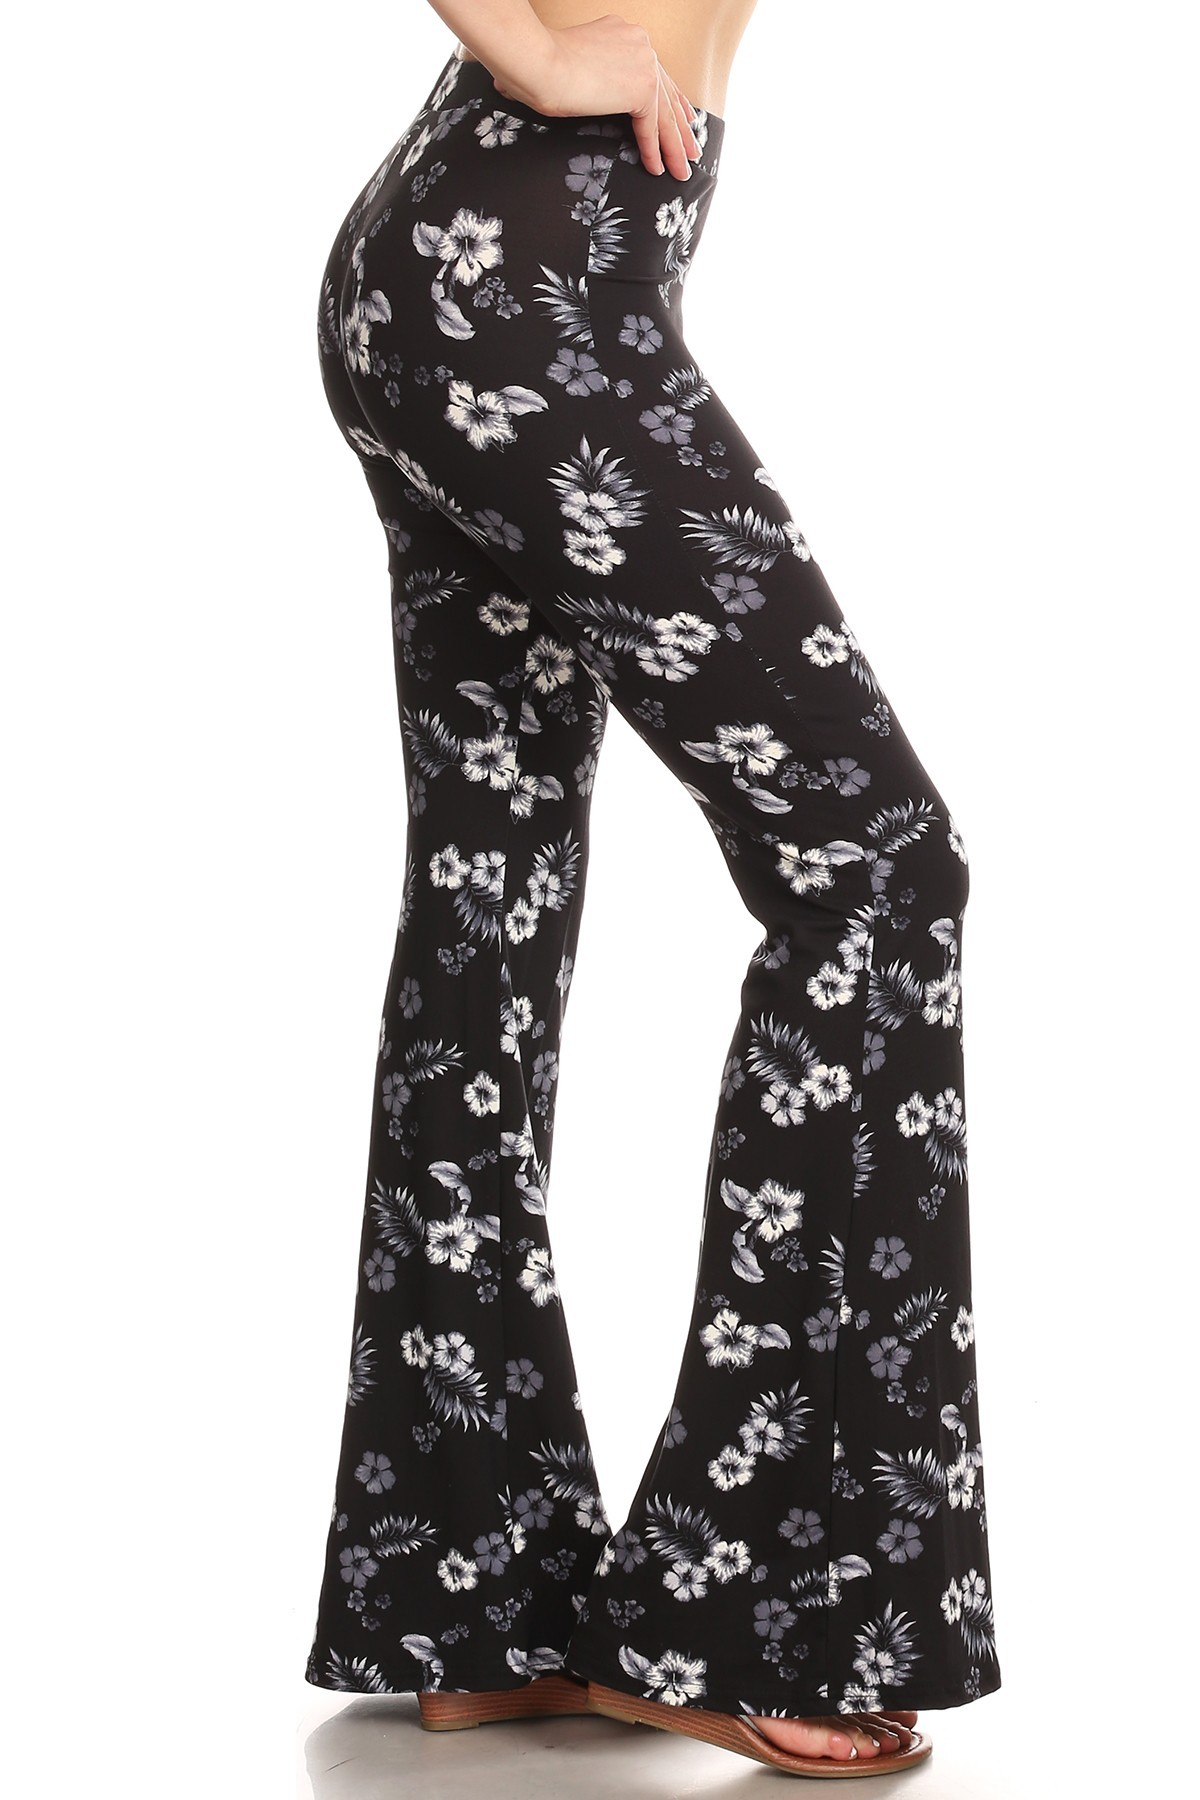 BLACK/GREY/WHITE TROPICAL PRINT BRUSH POLY FLARE PANTS #8FP01-35